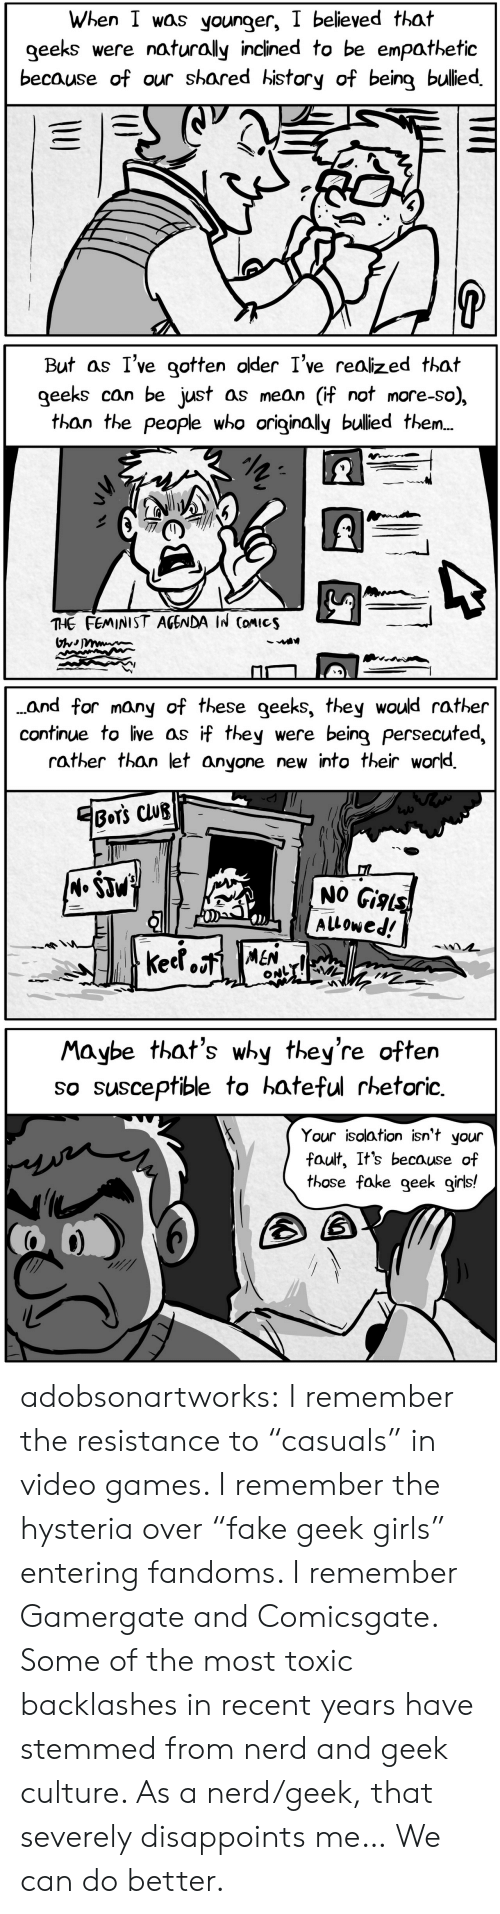 """Club, Fake, and Girls: When I was younger, I believed that  geeks  were naturally inclined to be enpathetic  because of our shared history of being bulied  P  U   But as I've gotten older I've realized that  geeks can be just as mean (if not more-so),  than the people who originally bulied the..  THE FEMINIST AGENDA IN CoMIcs   ..and for many of these geeks, they would rather  continue to live as if they  rather than let anyone new into their world  were being persecuted,  EBOT'S CLUB  (M.$JM  NO Gials  Alowed!  keetoiMEN  ONL   Maybe that's why they're often  so susceptible to hateful rhetoric  Your isolation isn't your  fault, It's because of  those fake geek girls! adobsonartworks:  I remember the resistance to """"casuals"""" in video games. I remember the hysteria over """"fake geek girls"""" entering fandoms. I remember Gamergate and Comicsgate. Some of the most toxic backlashes in recent years have stemmed from nerd and geek culture. As a nerd/geek, that severely disappoints me… We can do better."""